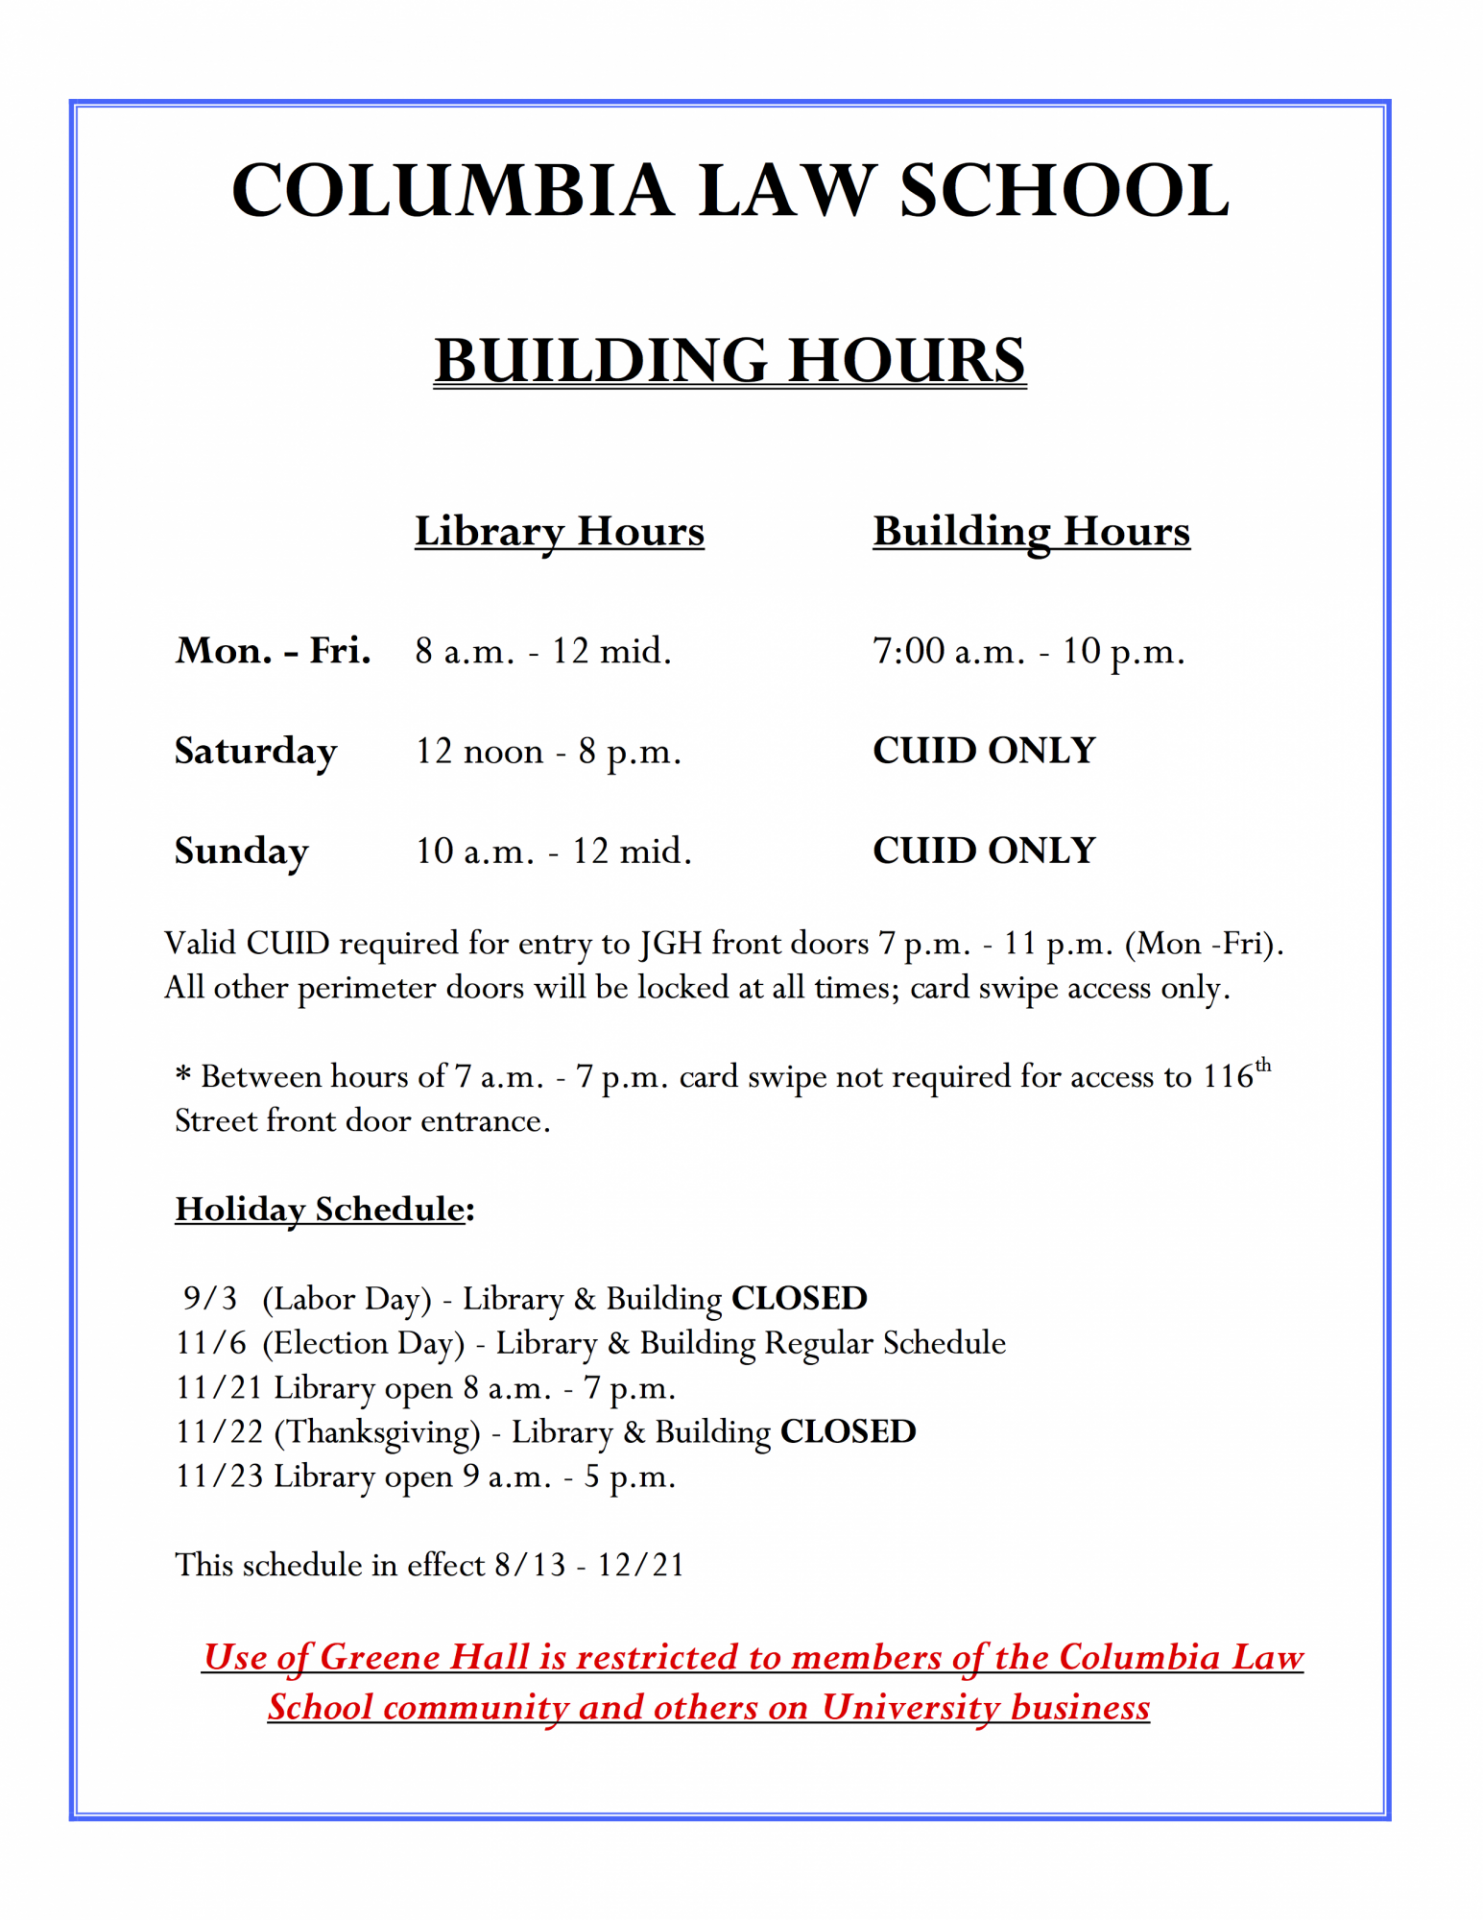 Columbia Law School - Fall 2018 Building Hours